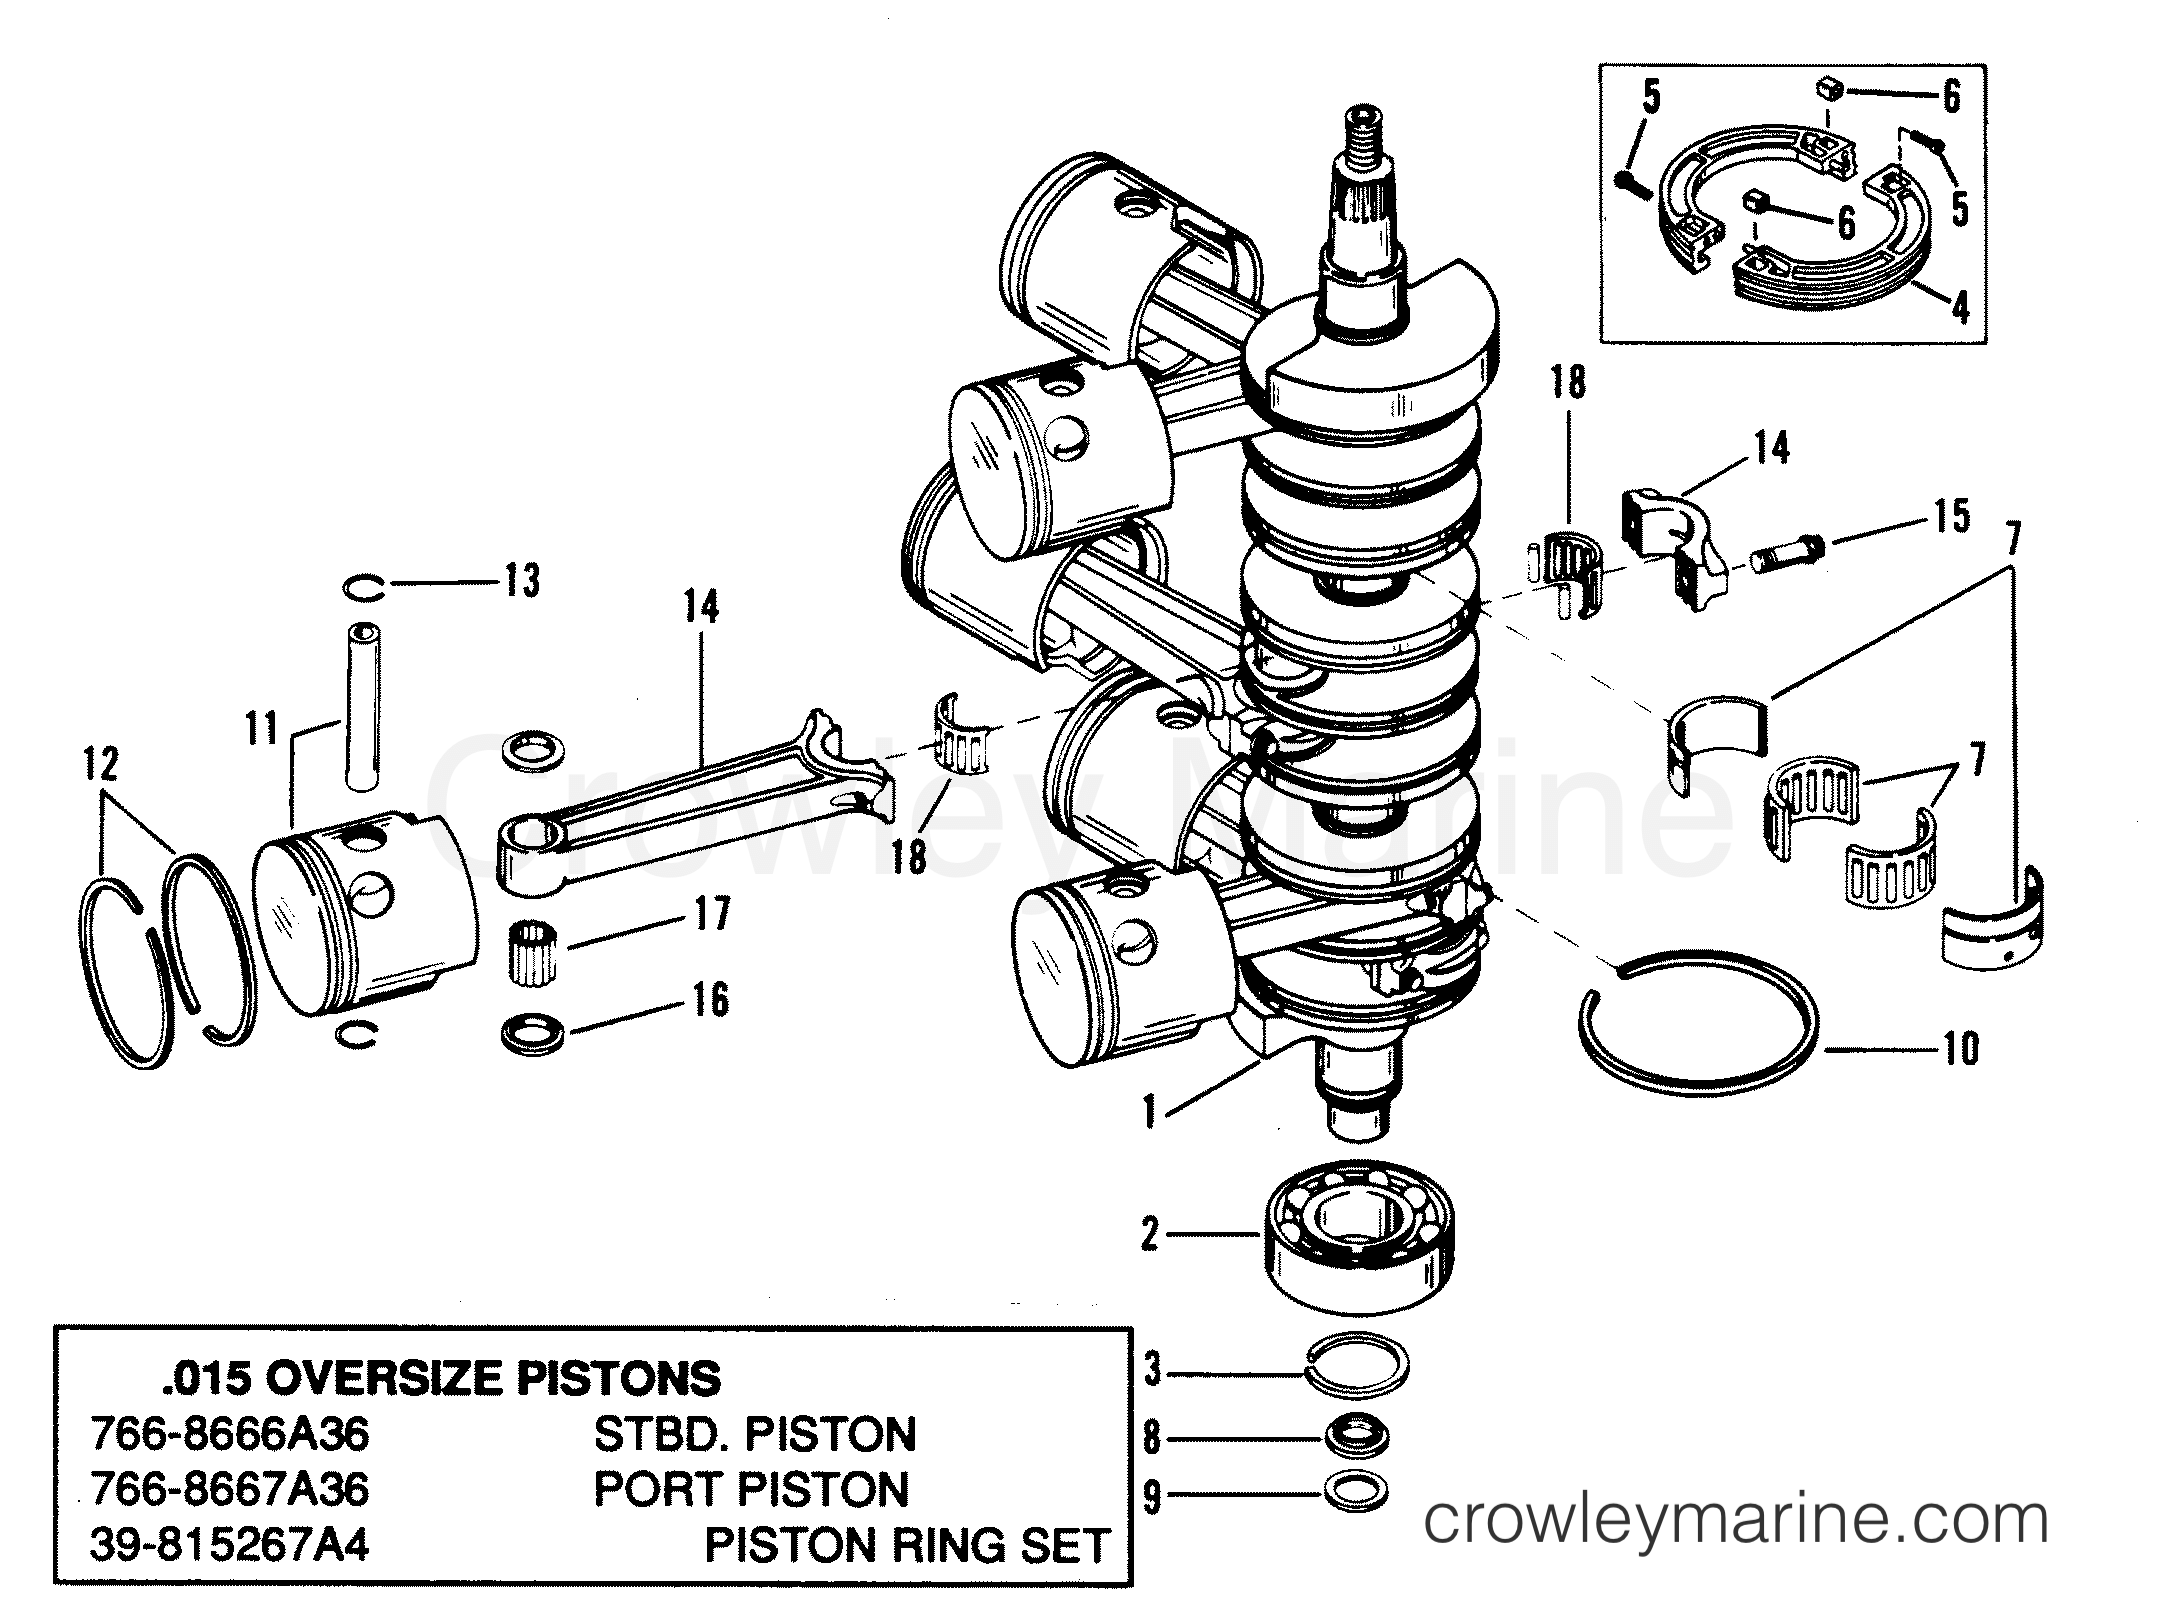 Crankshaft Pistons And Connecting Rods 1989 Mariner Outboard Engine Diagram Schedule 175ski L 7175413pd